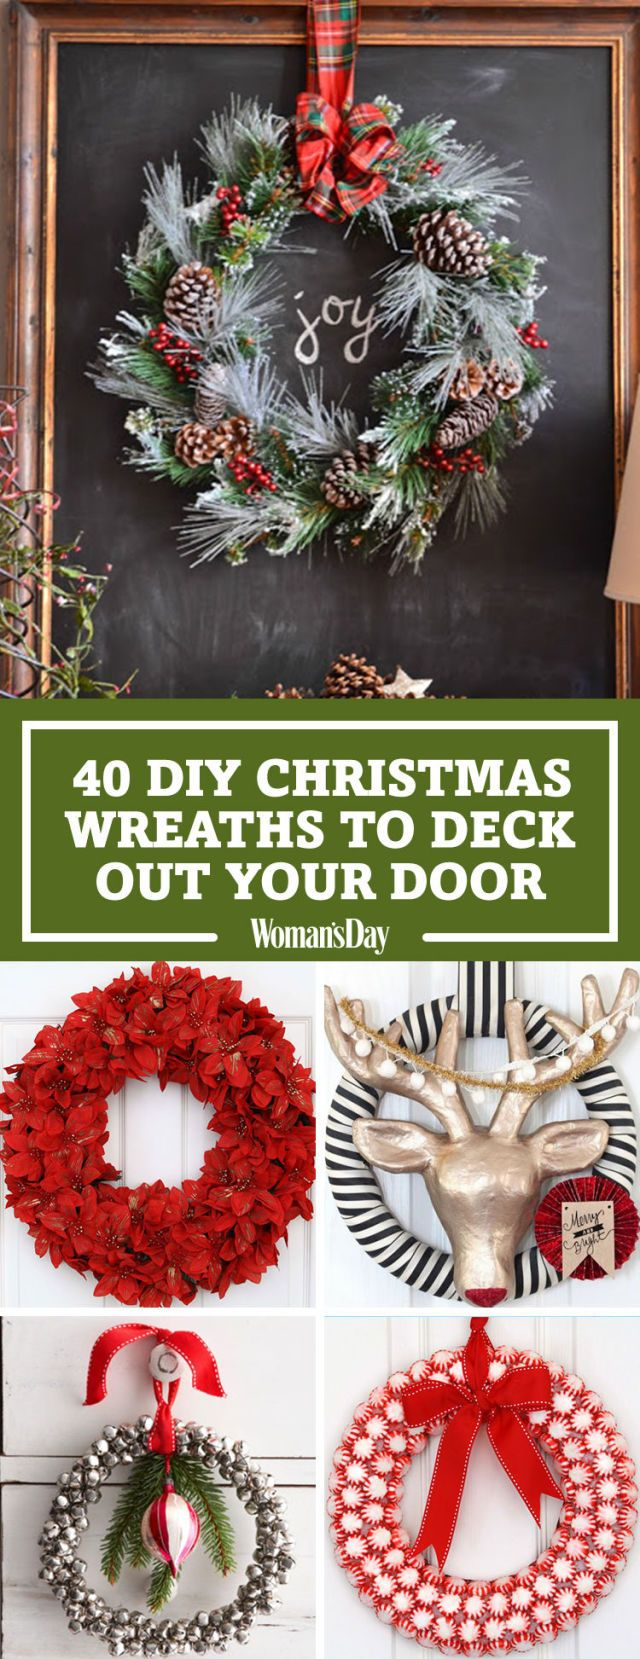 22 DIY Christmas Wreaths for the Most Festive Display on